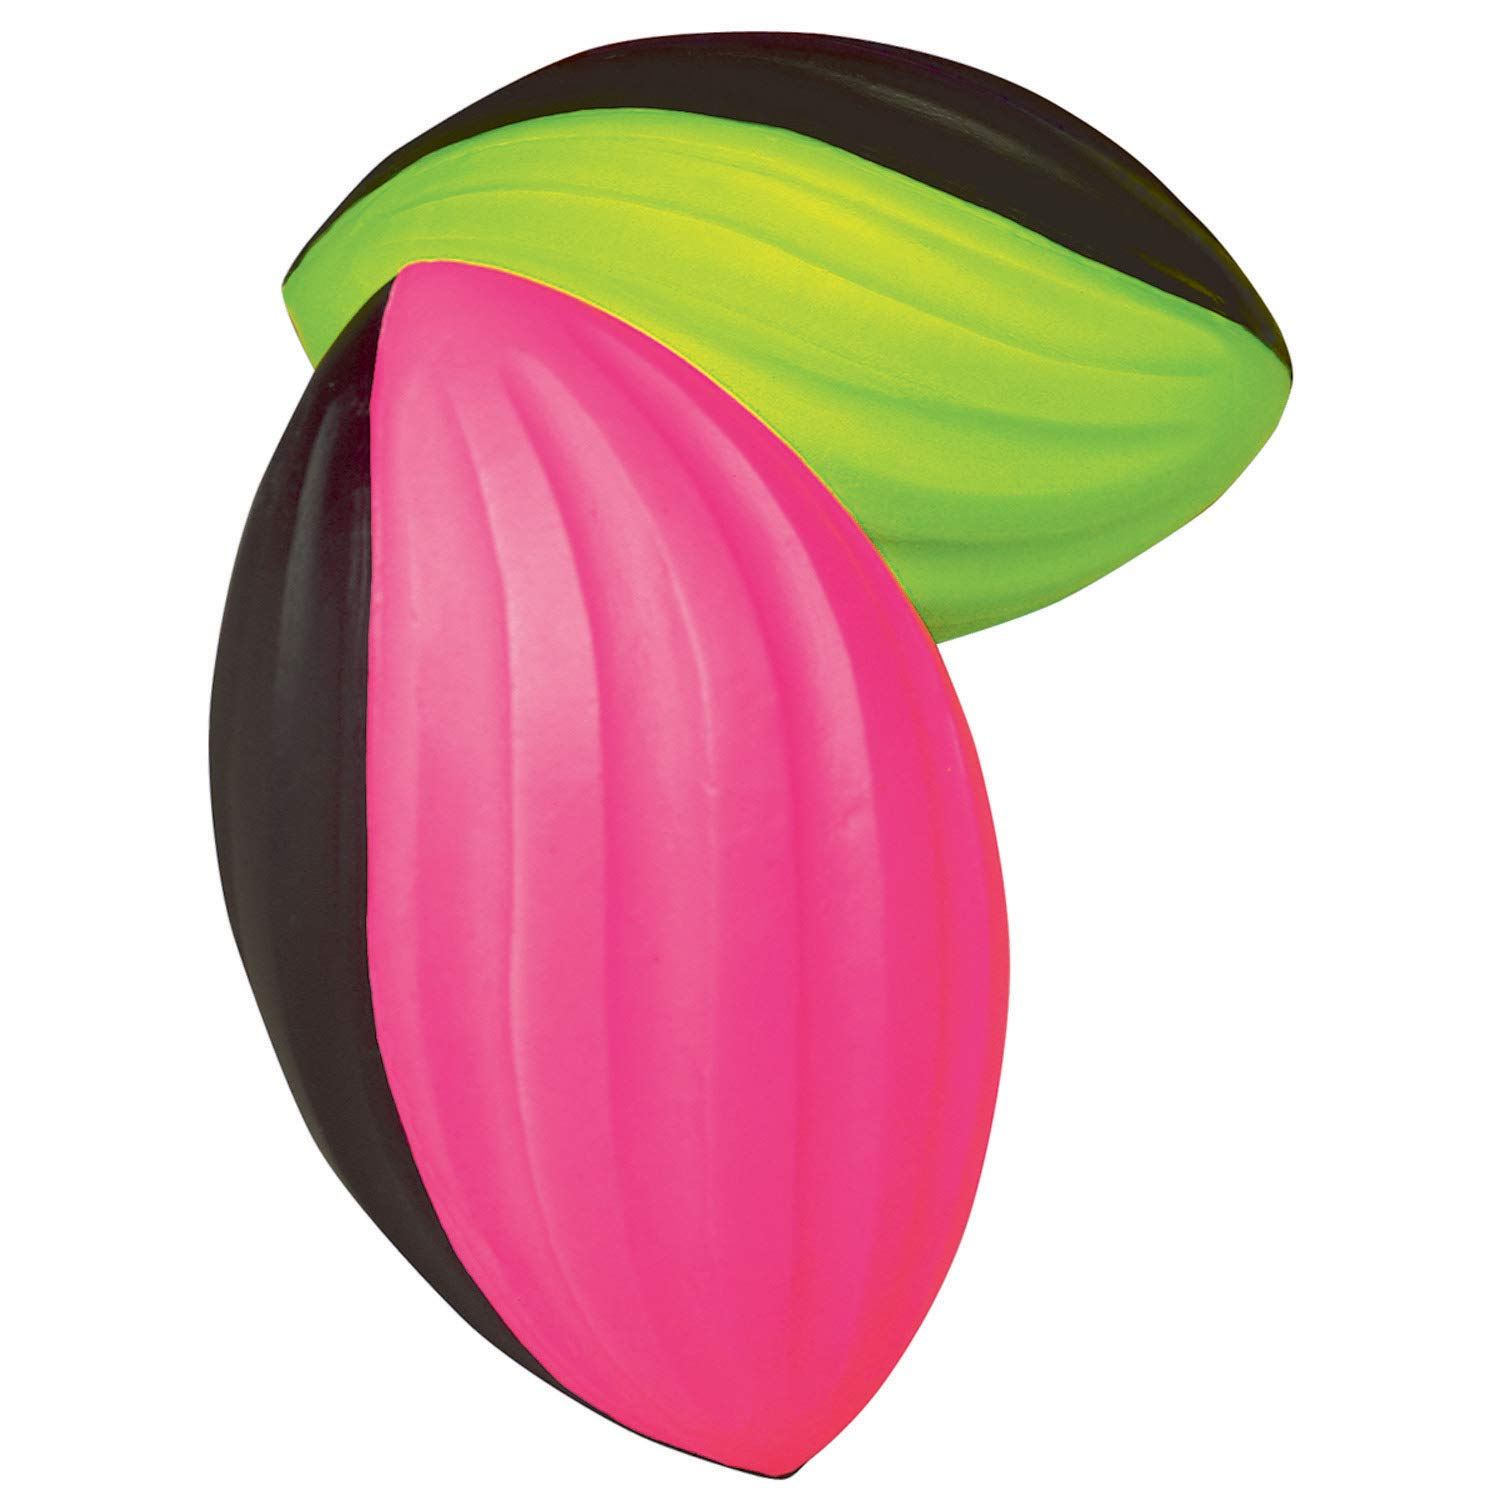 POOF Foam Mini Power Spiral Football, 5-1/2'', Pack of 6, Assorted by POOF